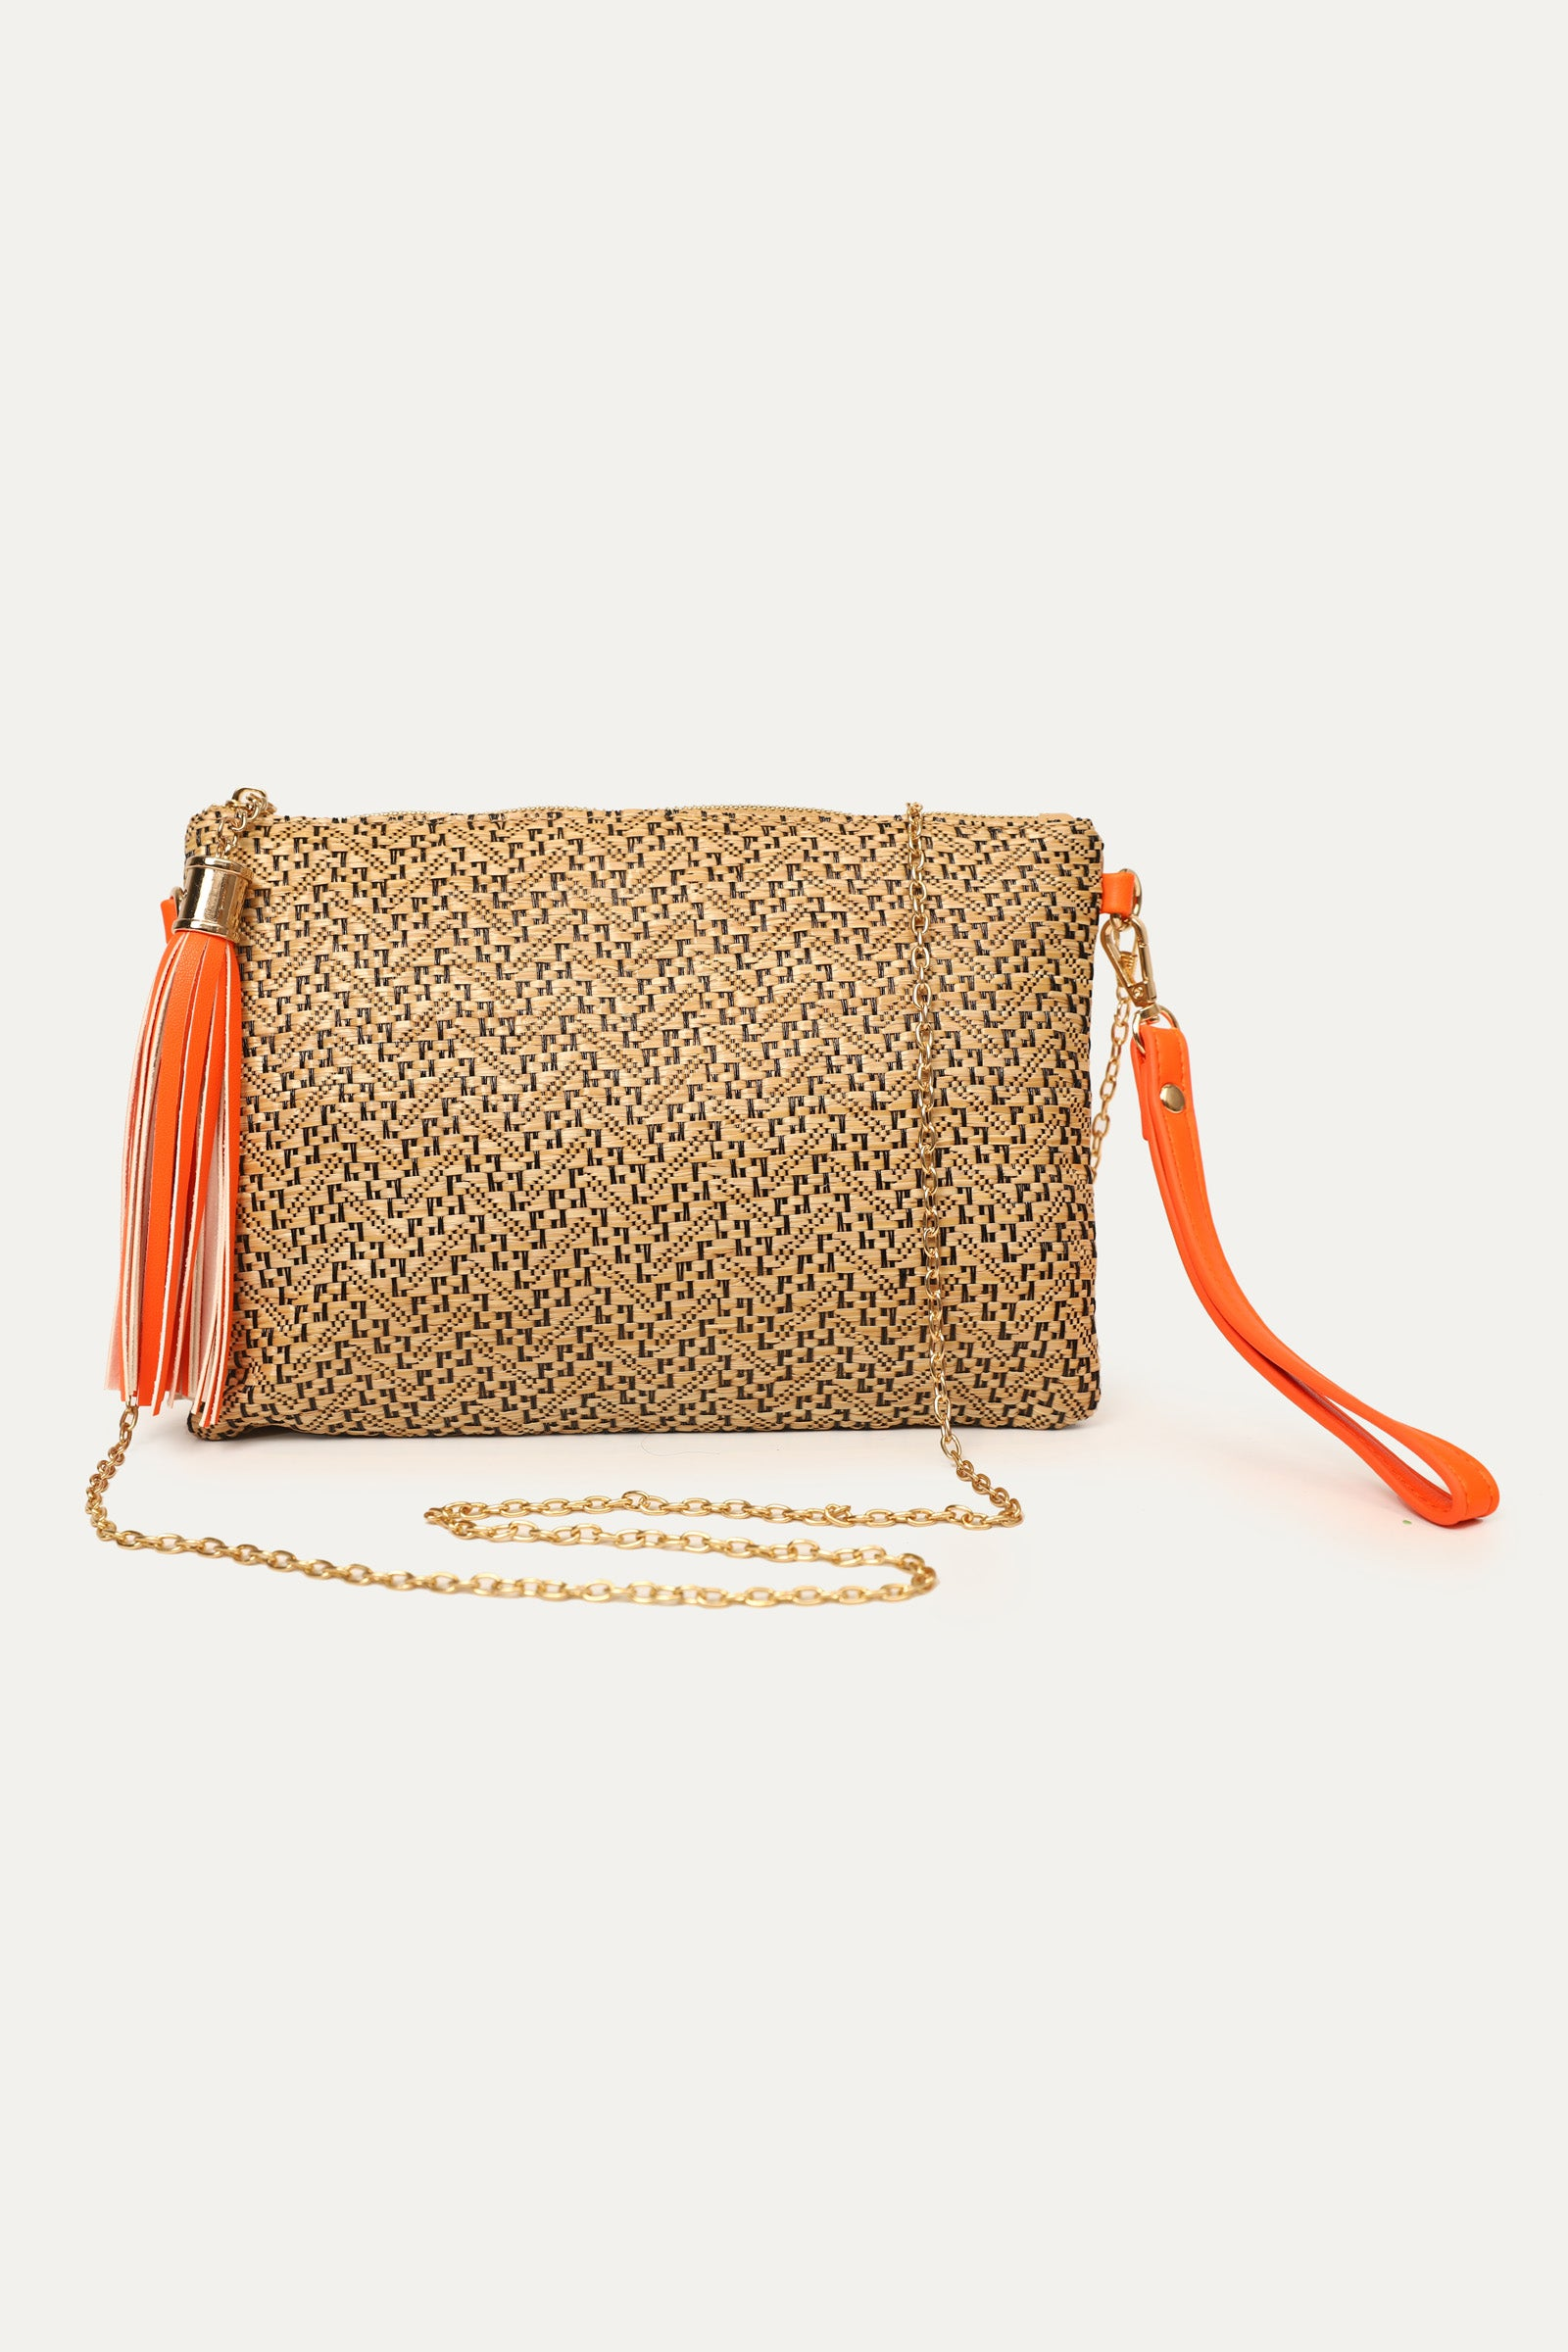 Bucket Weave Sling Bag